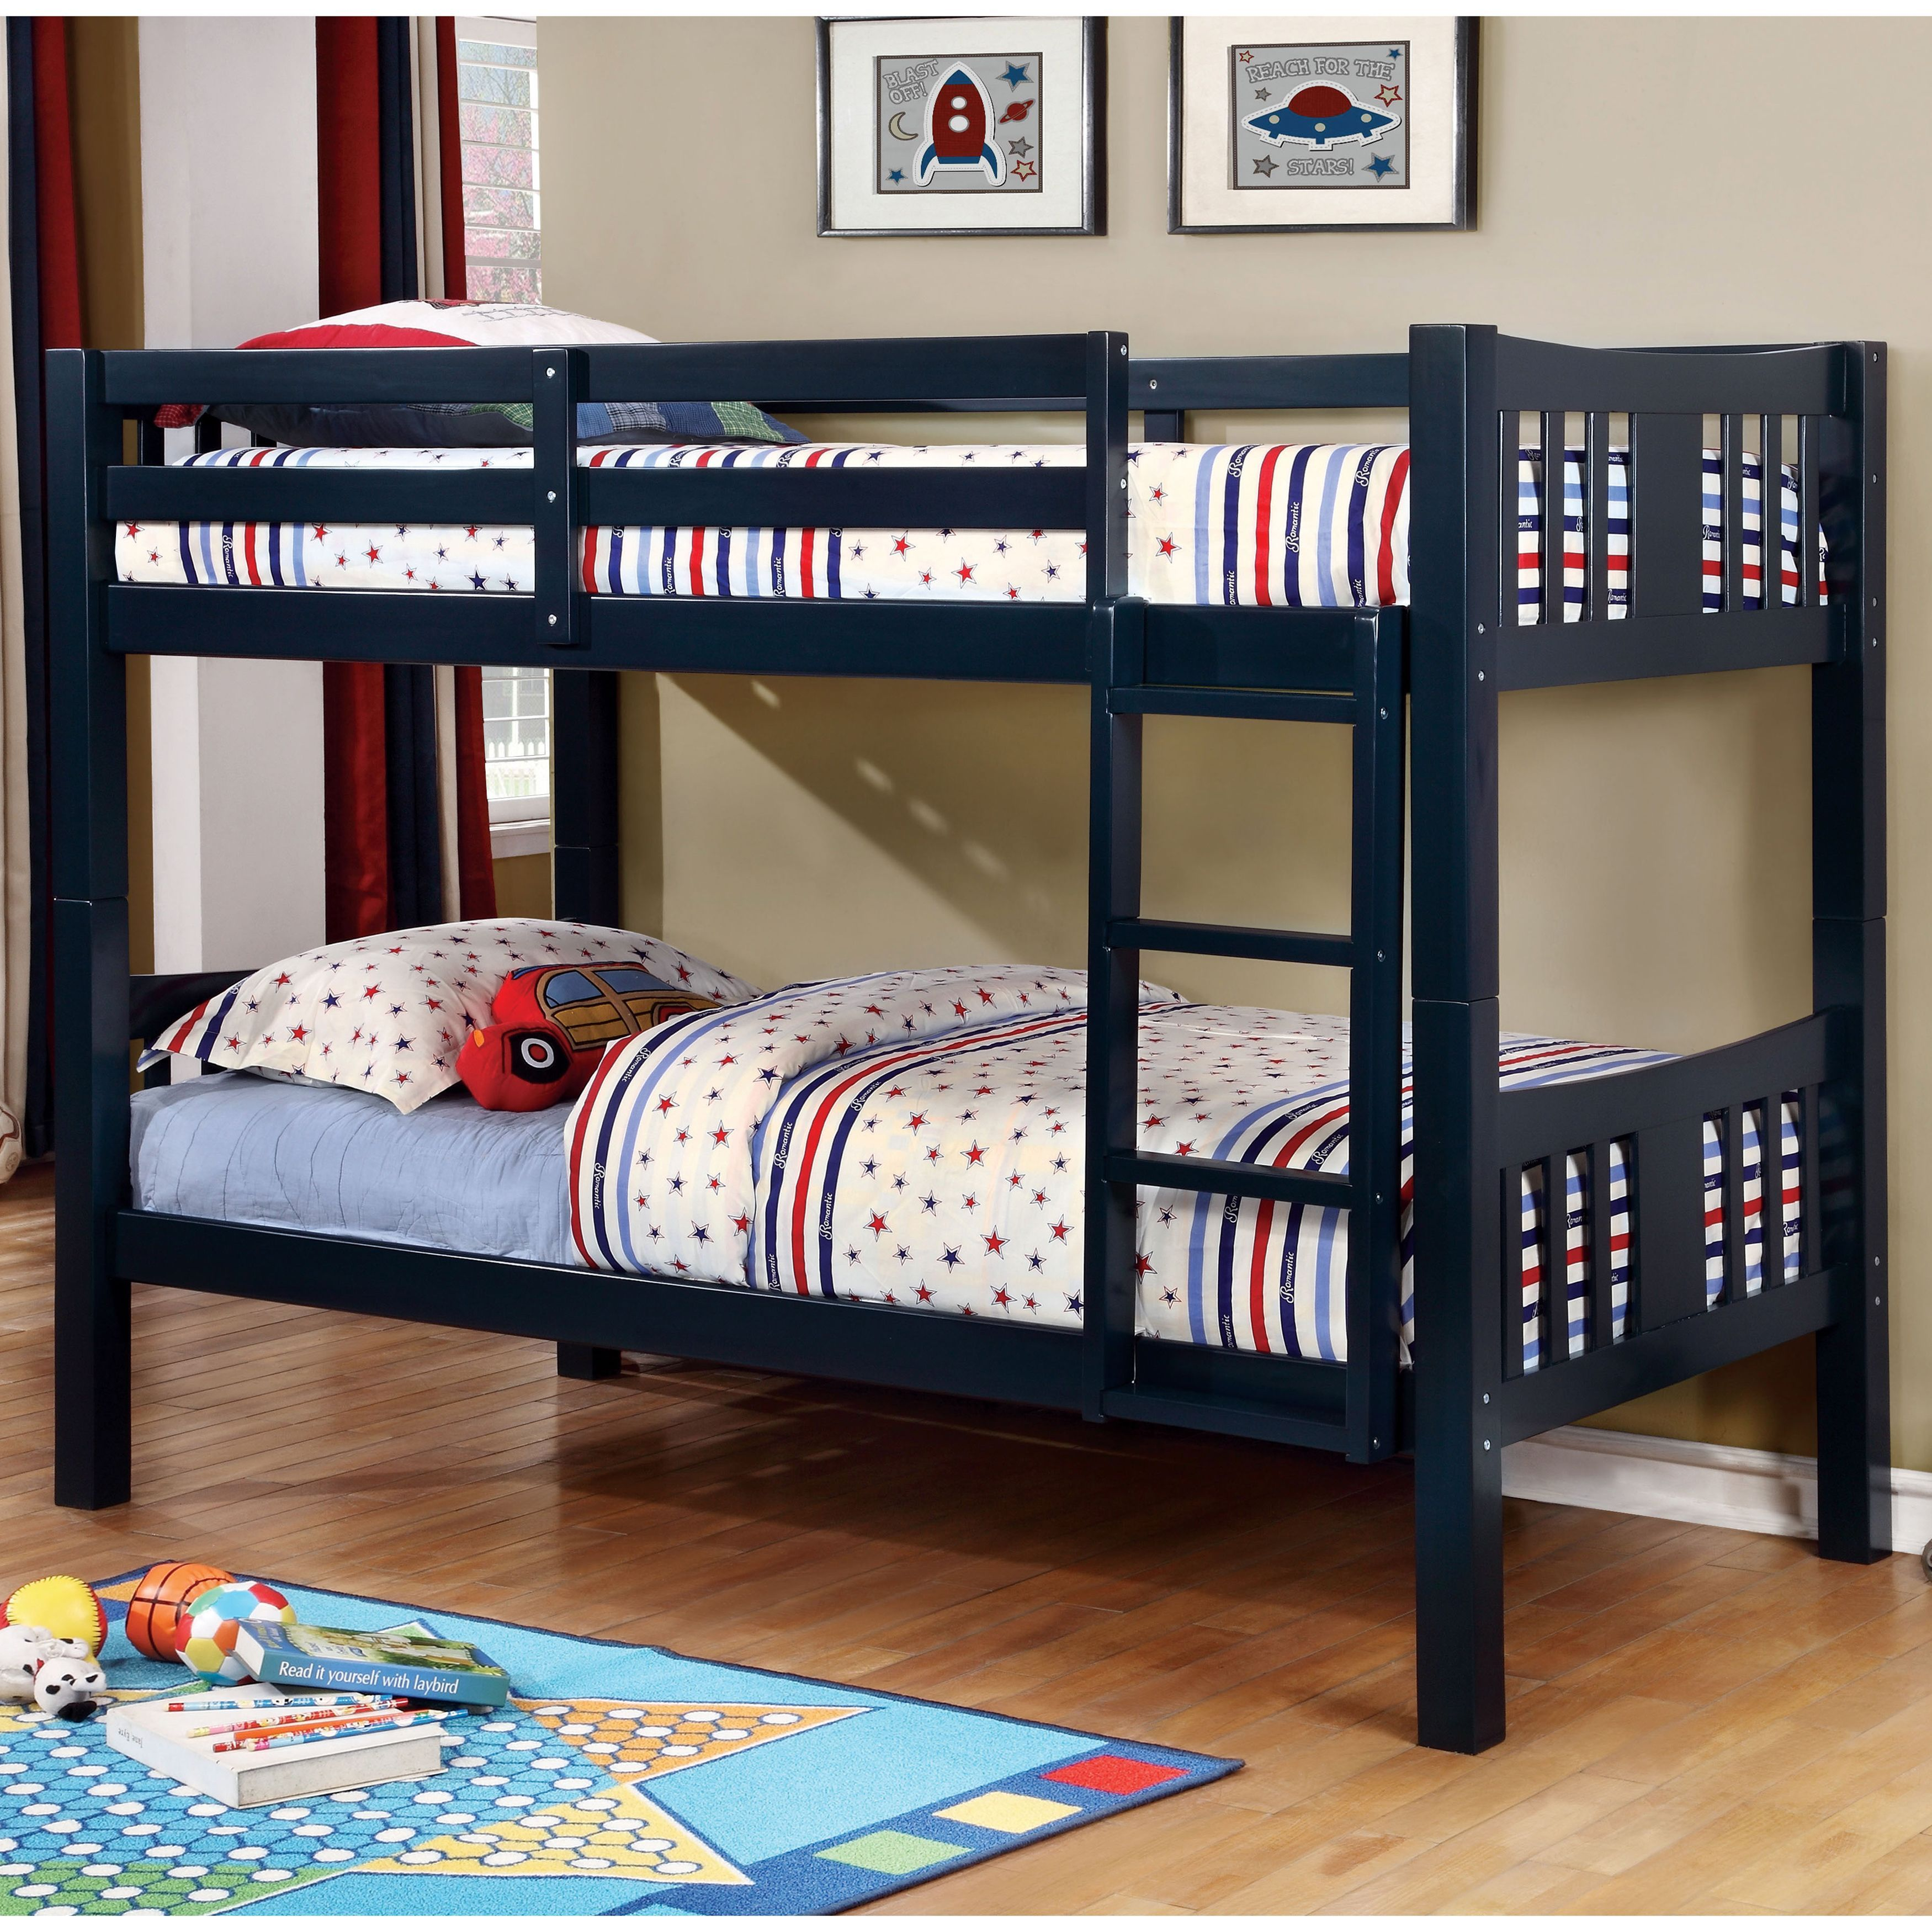 Furniture of America Pello Twin over Twin Bunk Bed by Furniture of